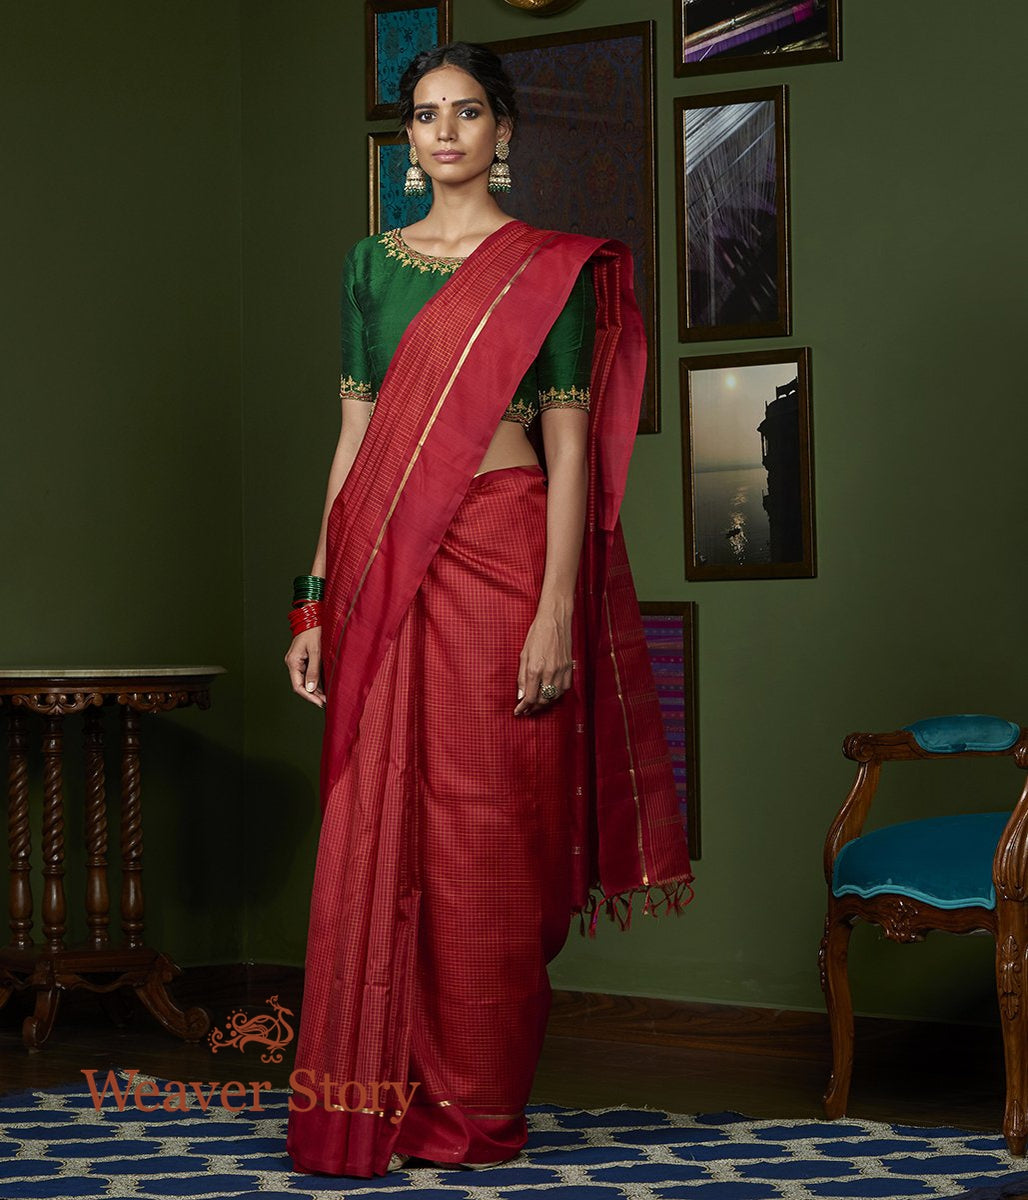 Handwoven Red All Over Checks with Plain Border Kanjivaram Saree